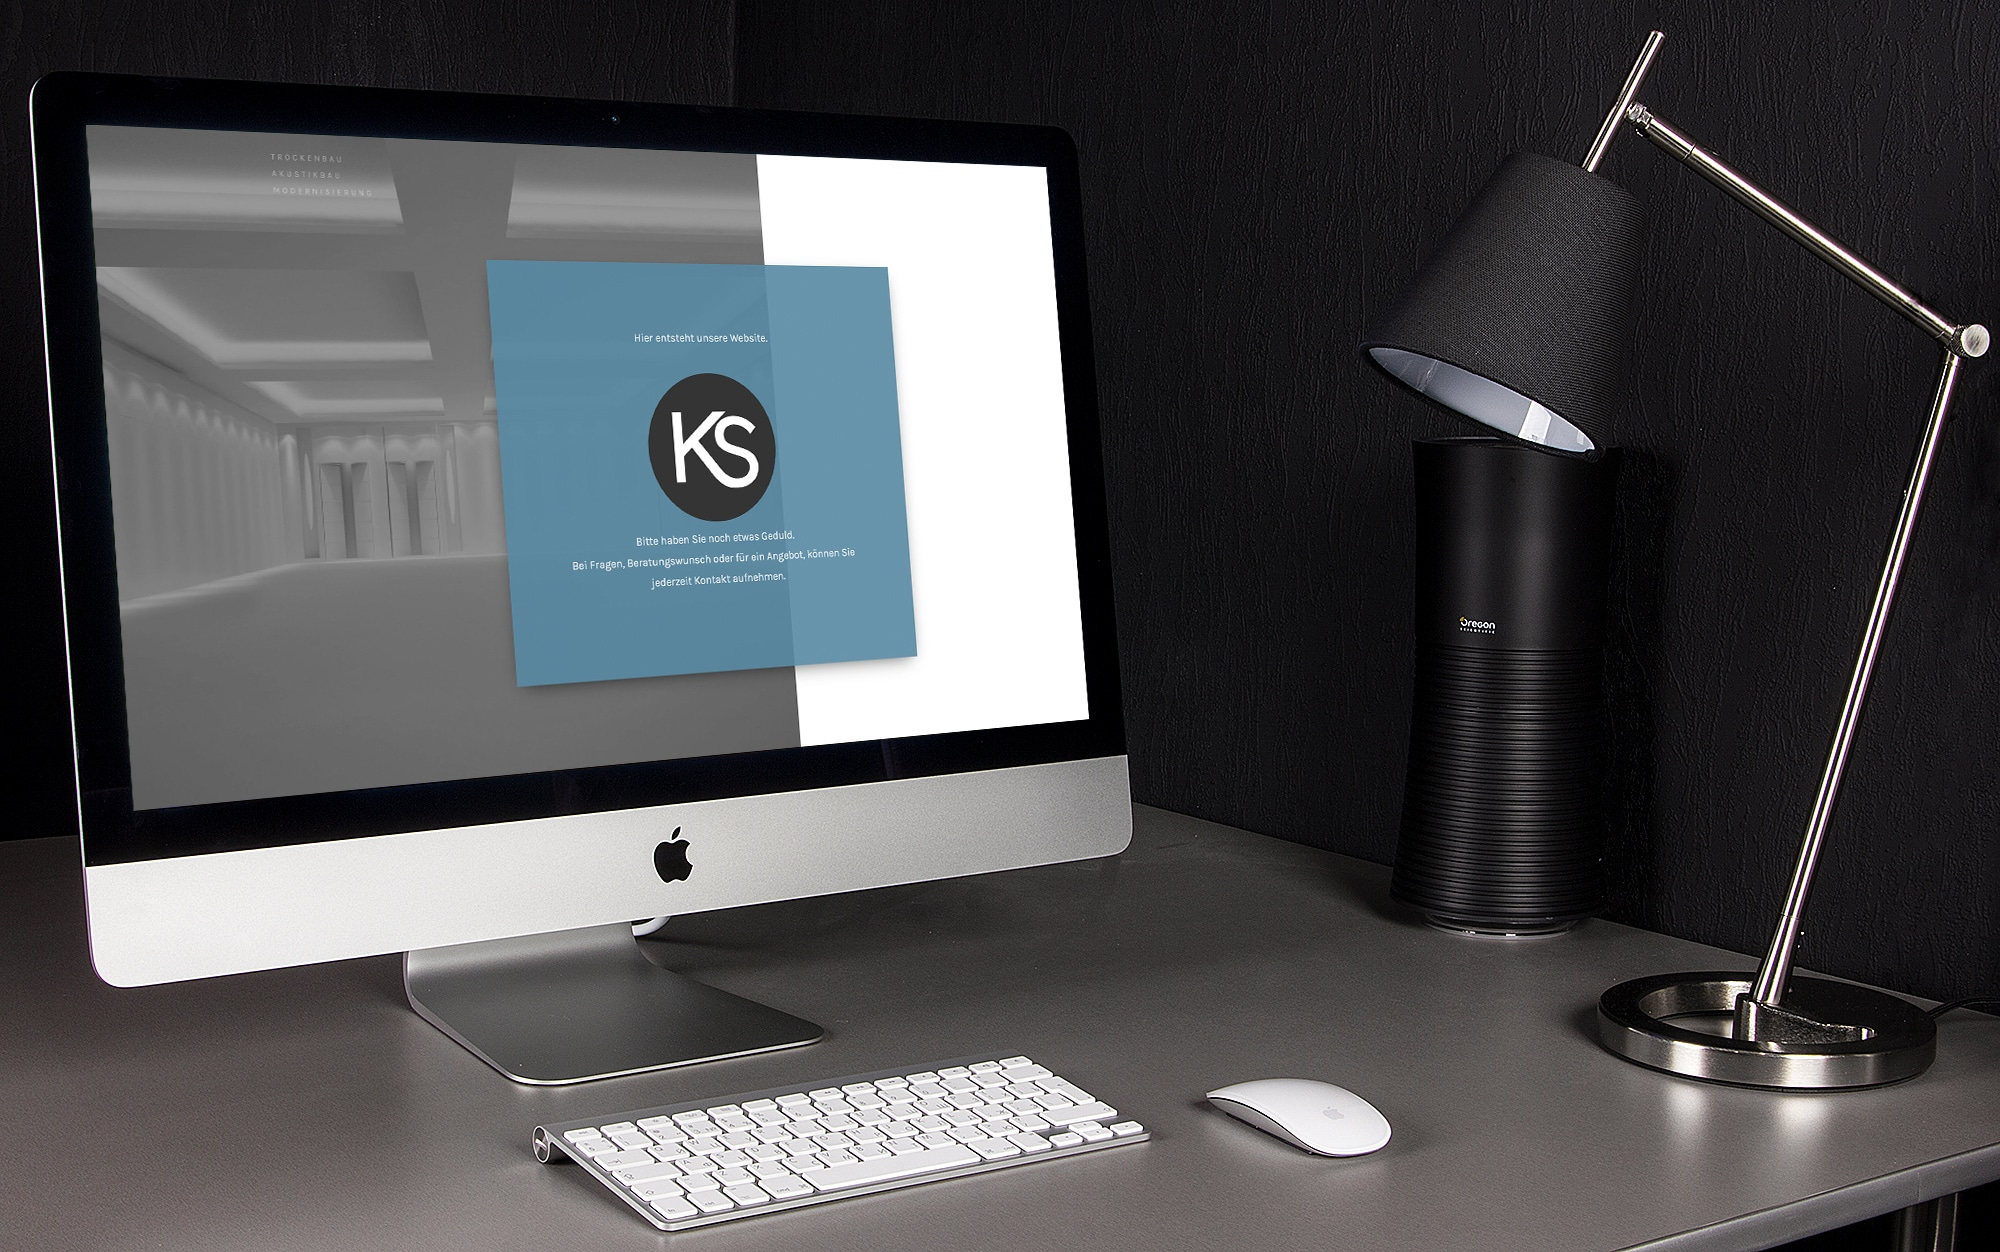 KS Baudesign Startseite Webseite Webdesign Webauftritt Website Corporate Design Logo Design Grafik